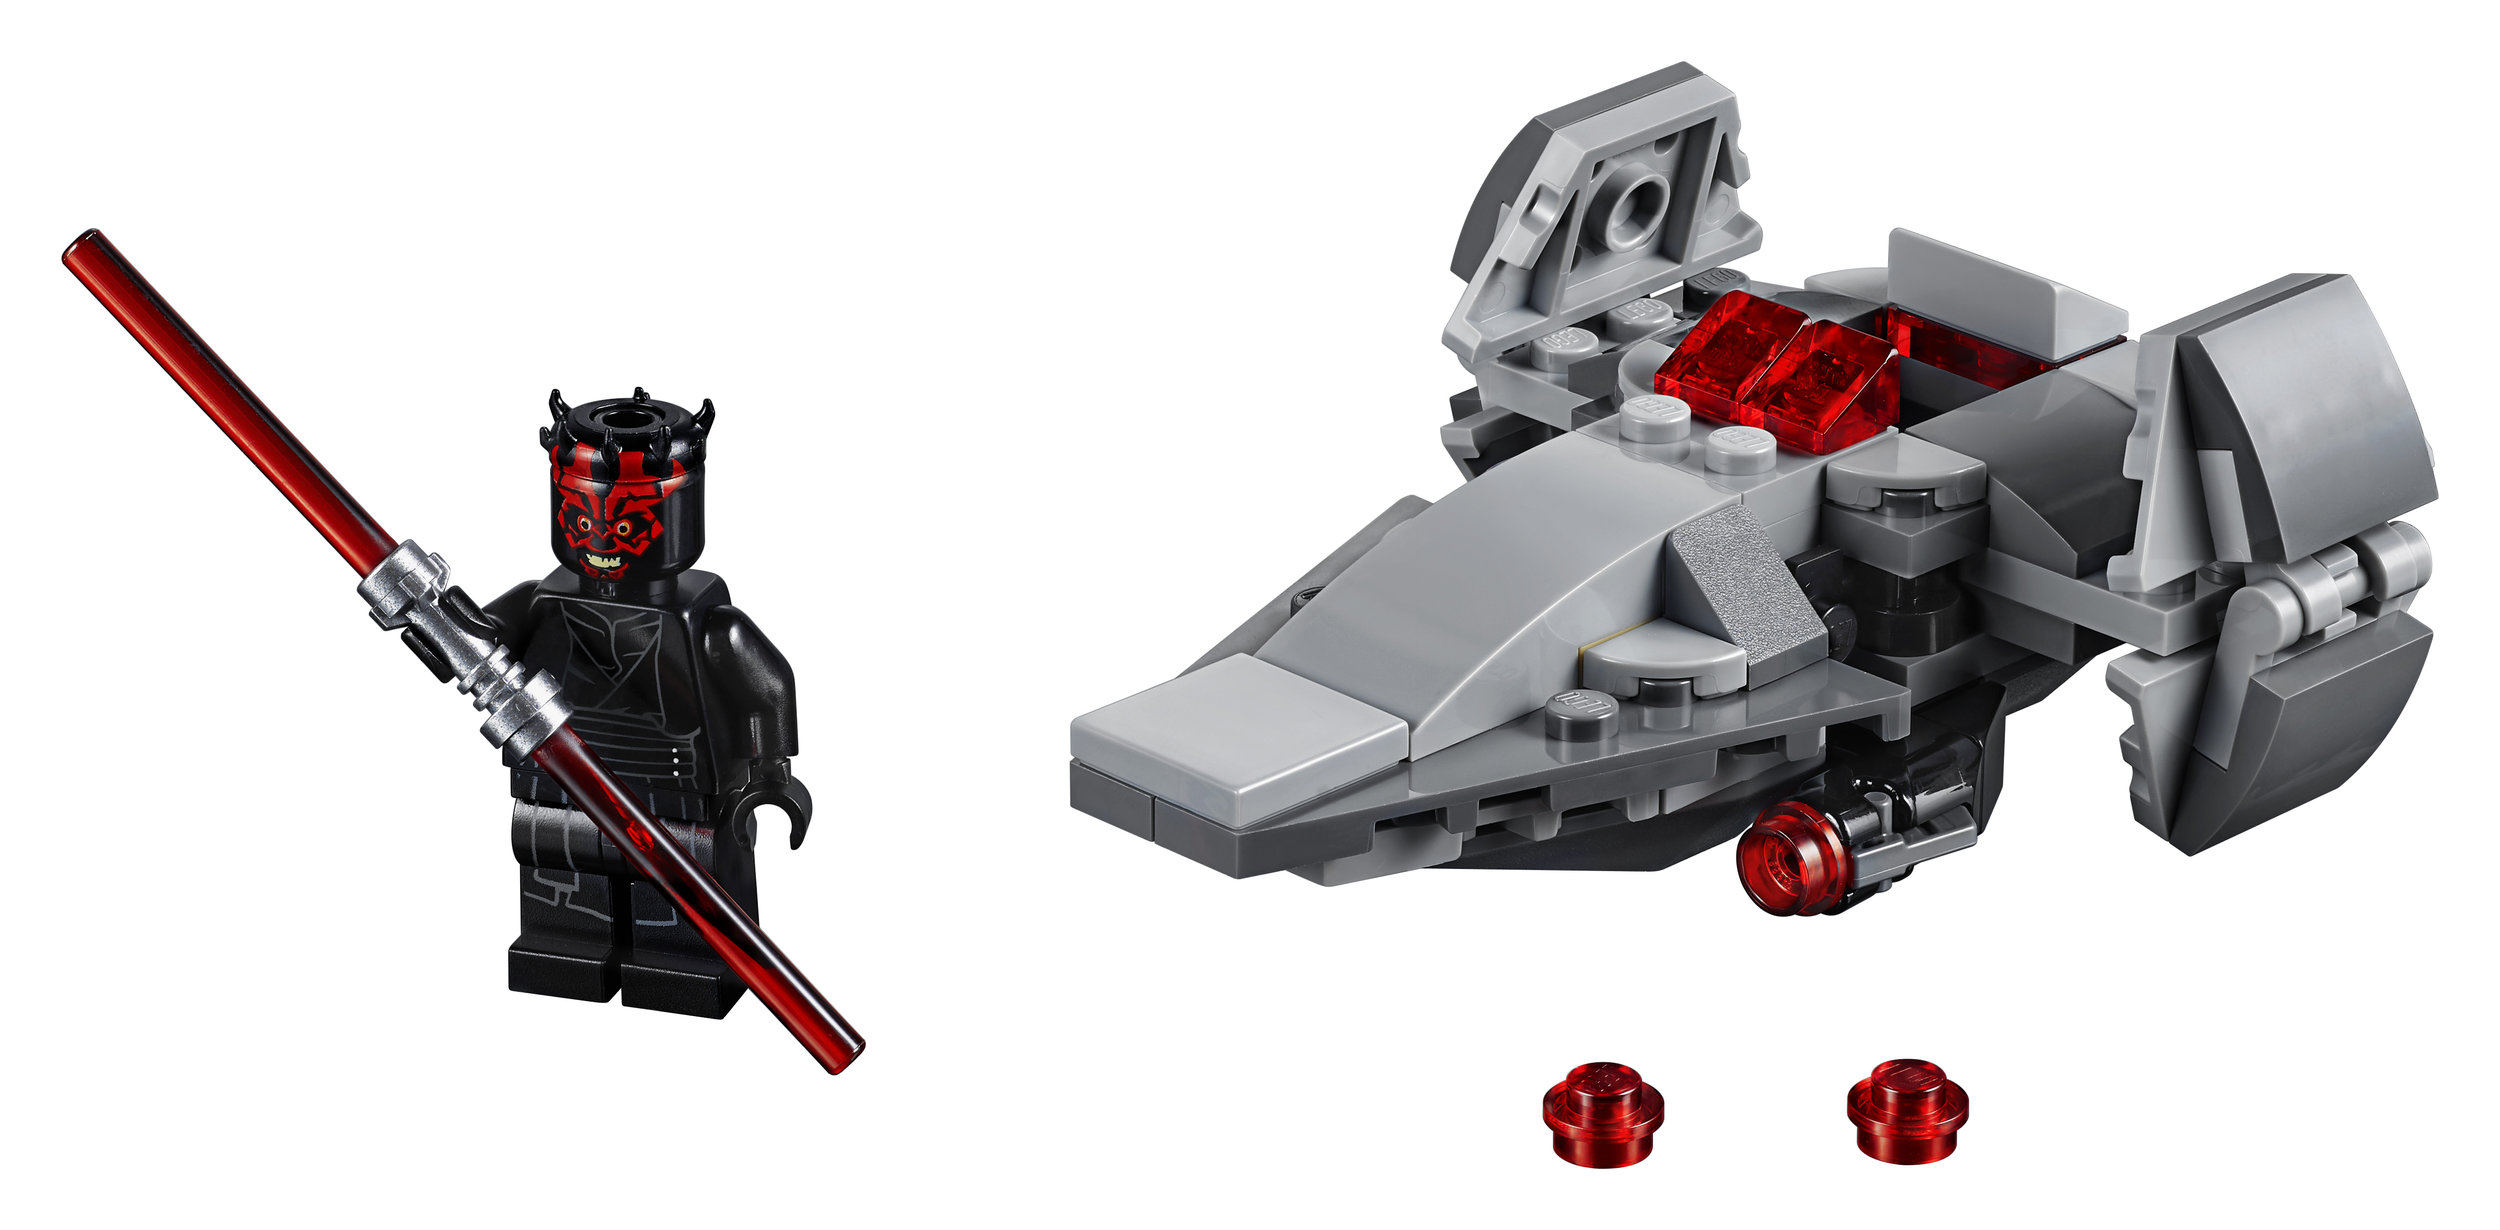 75224 Star Wars Sith Infiltrator™ Microfighter .jpg